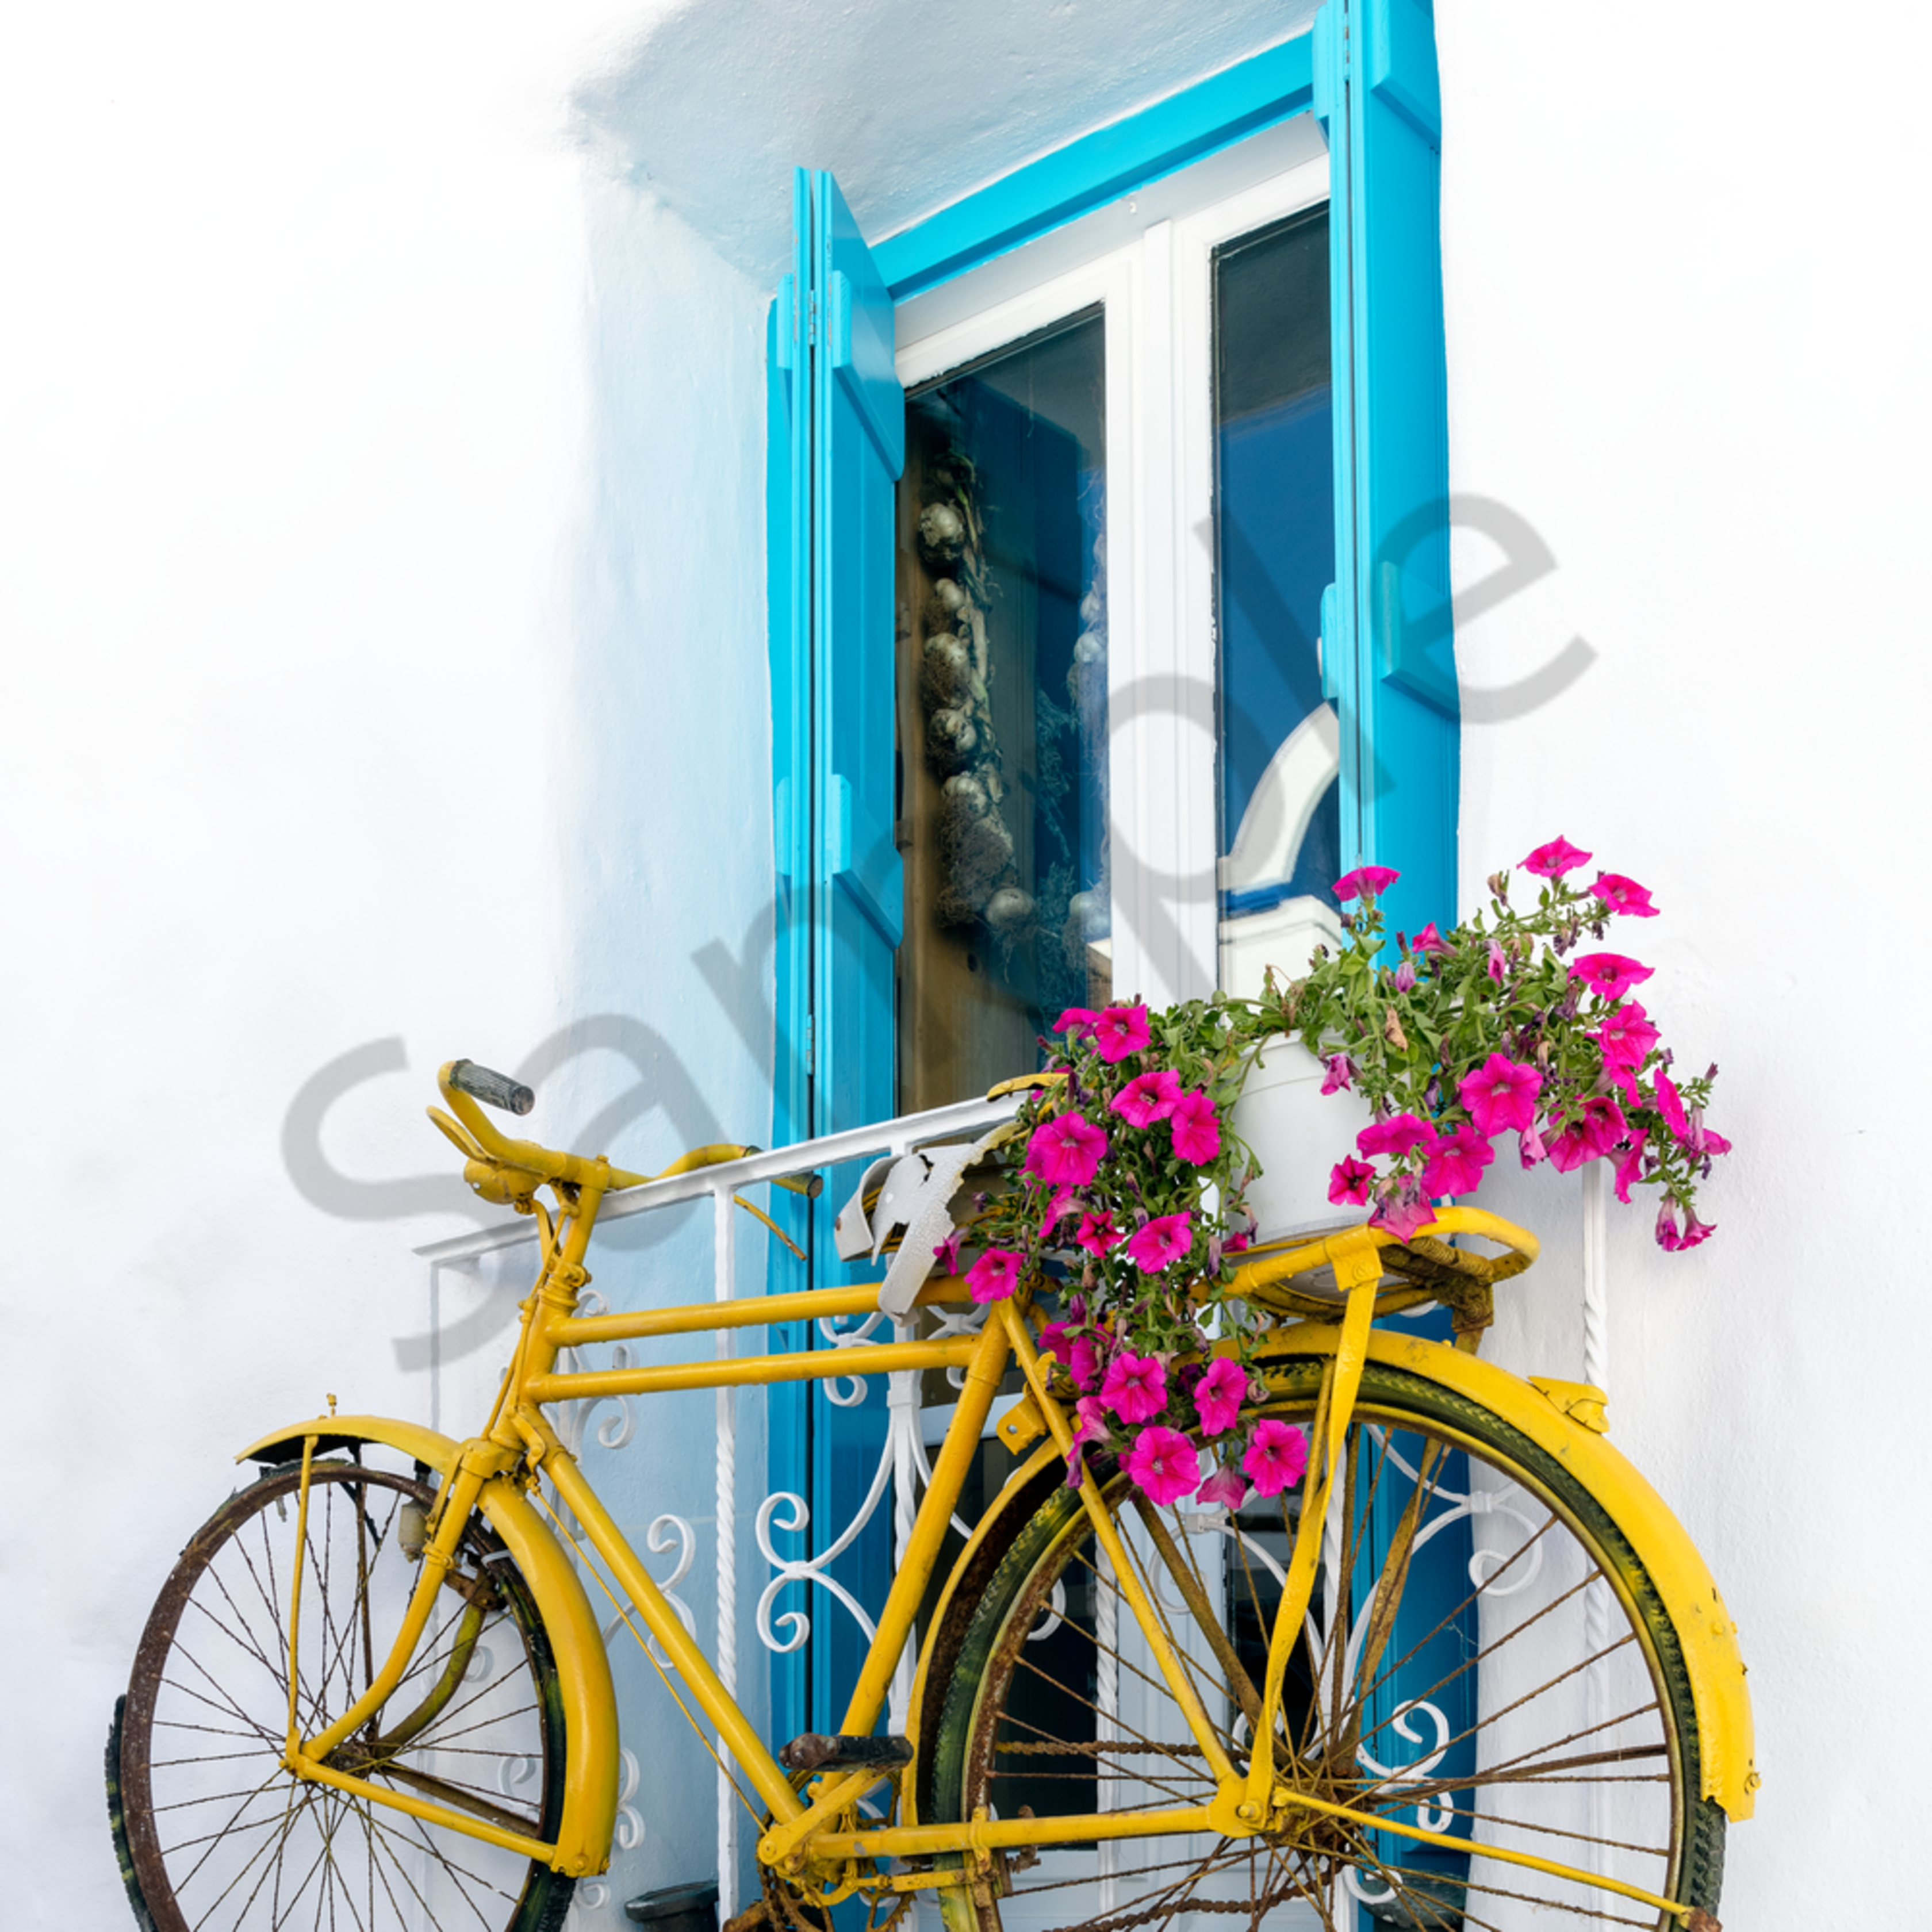 Hanging bicycle naxos greecetif jisdey